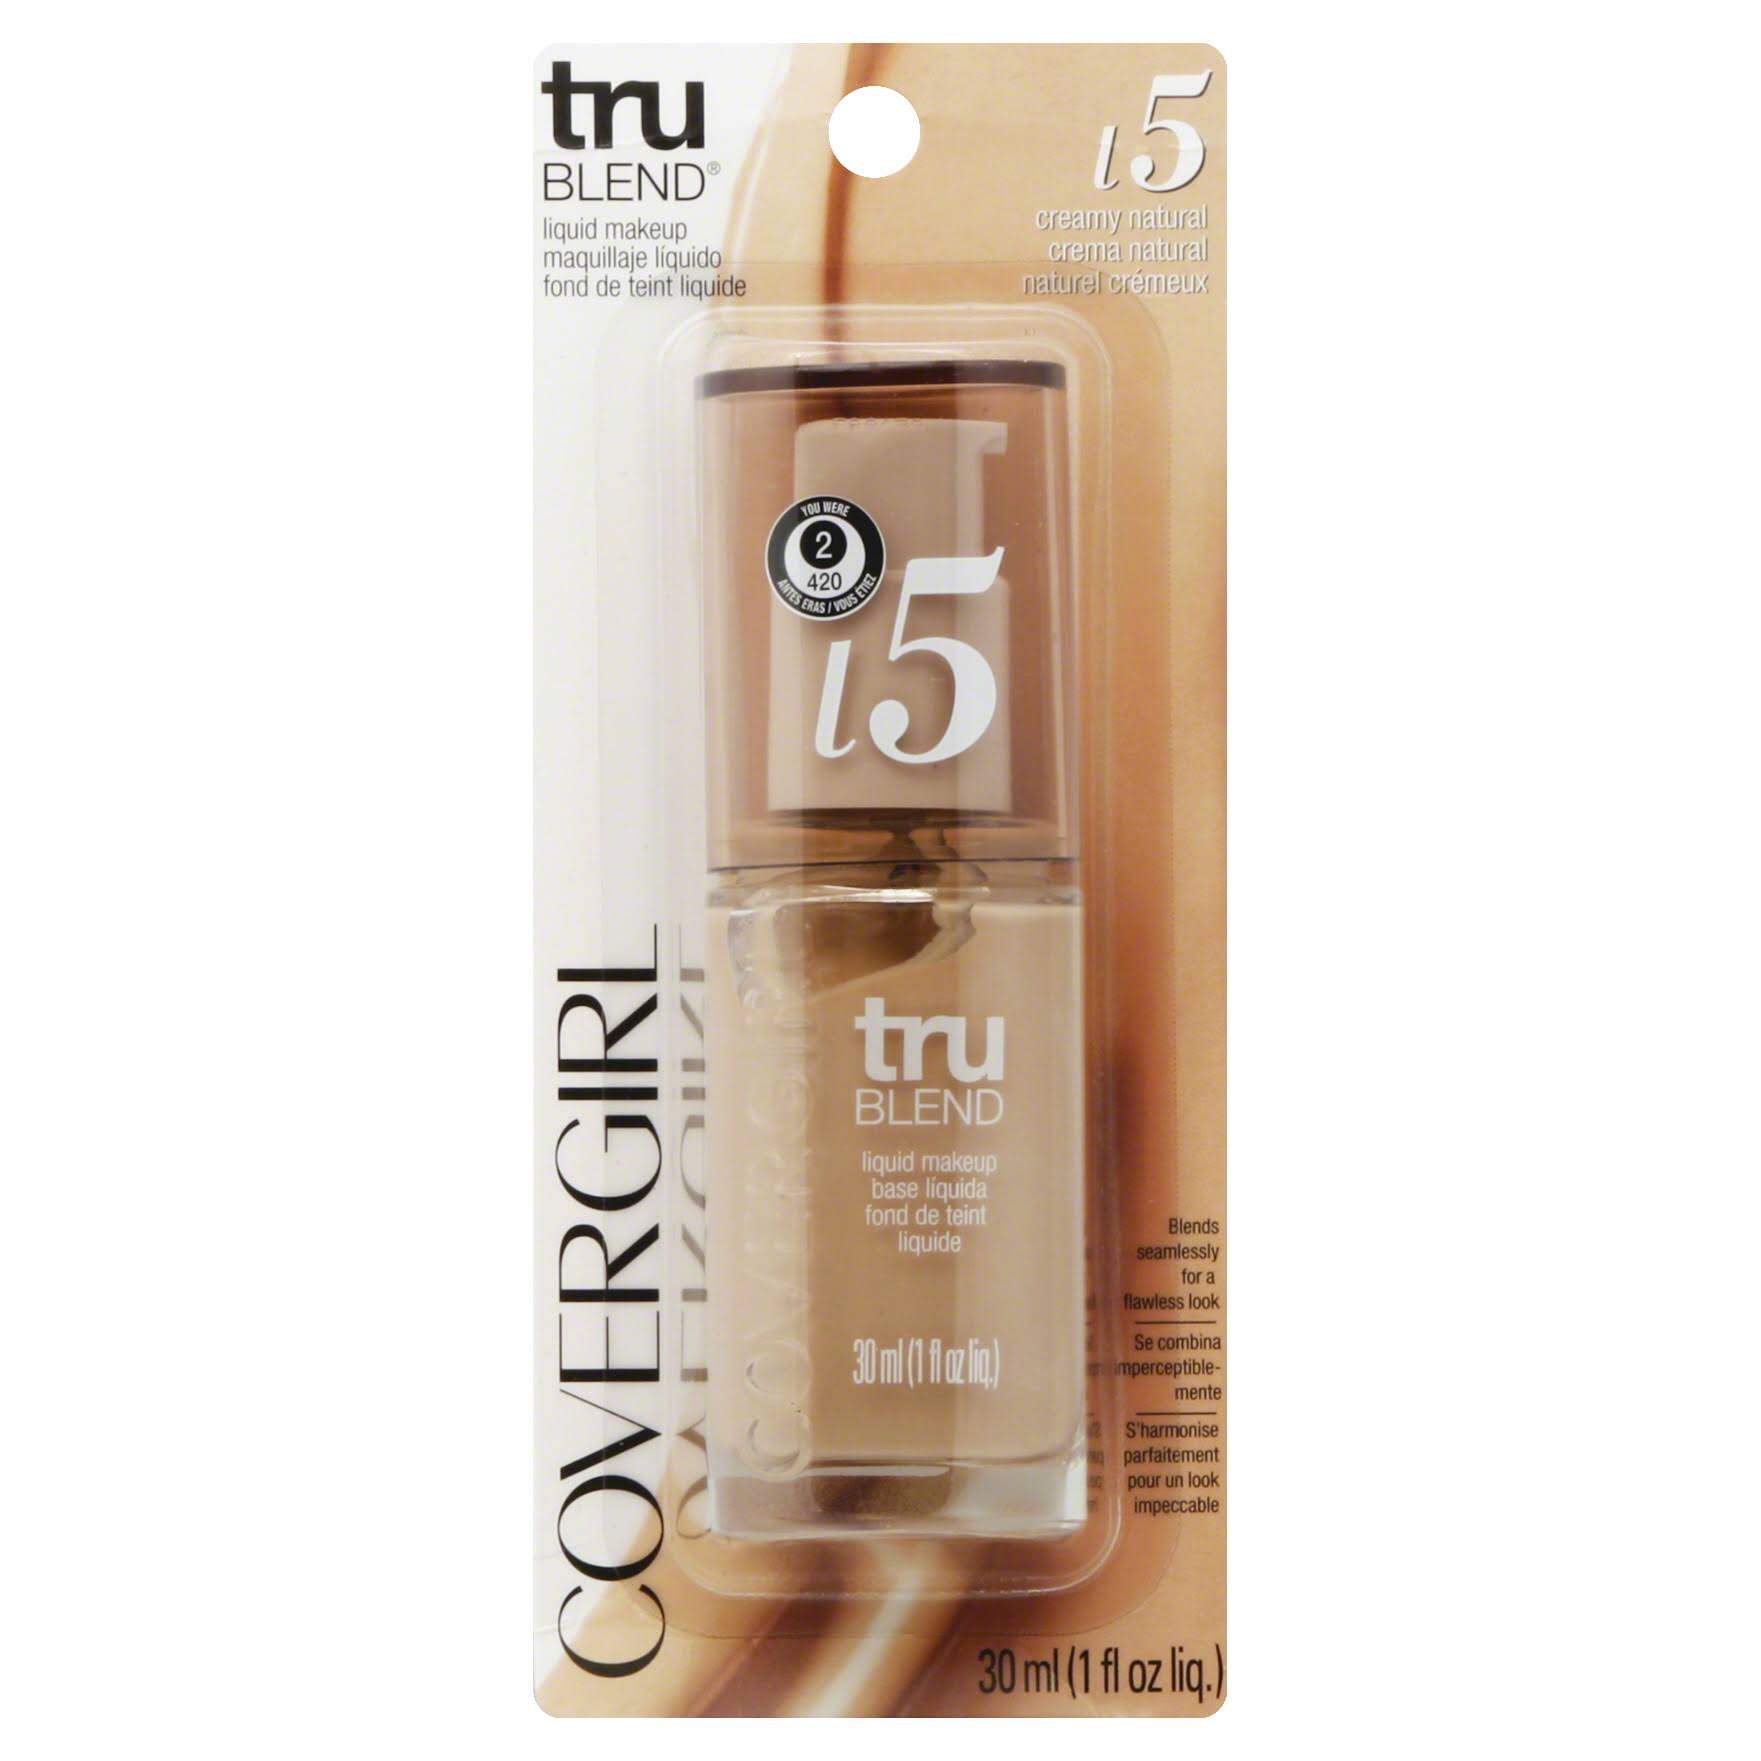 CoverGirl Trublend Liquid Makeup - Creamy Natural L5, 1oz